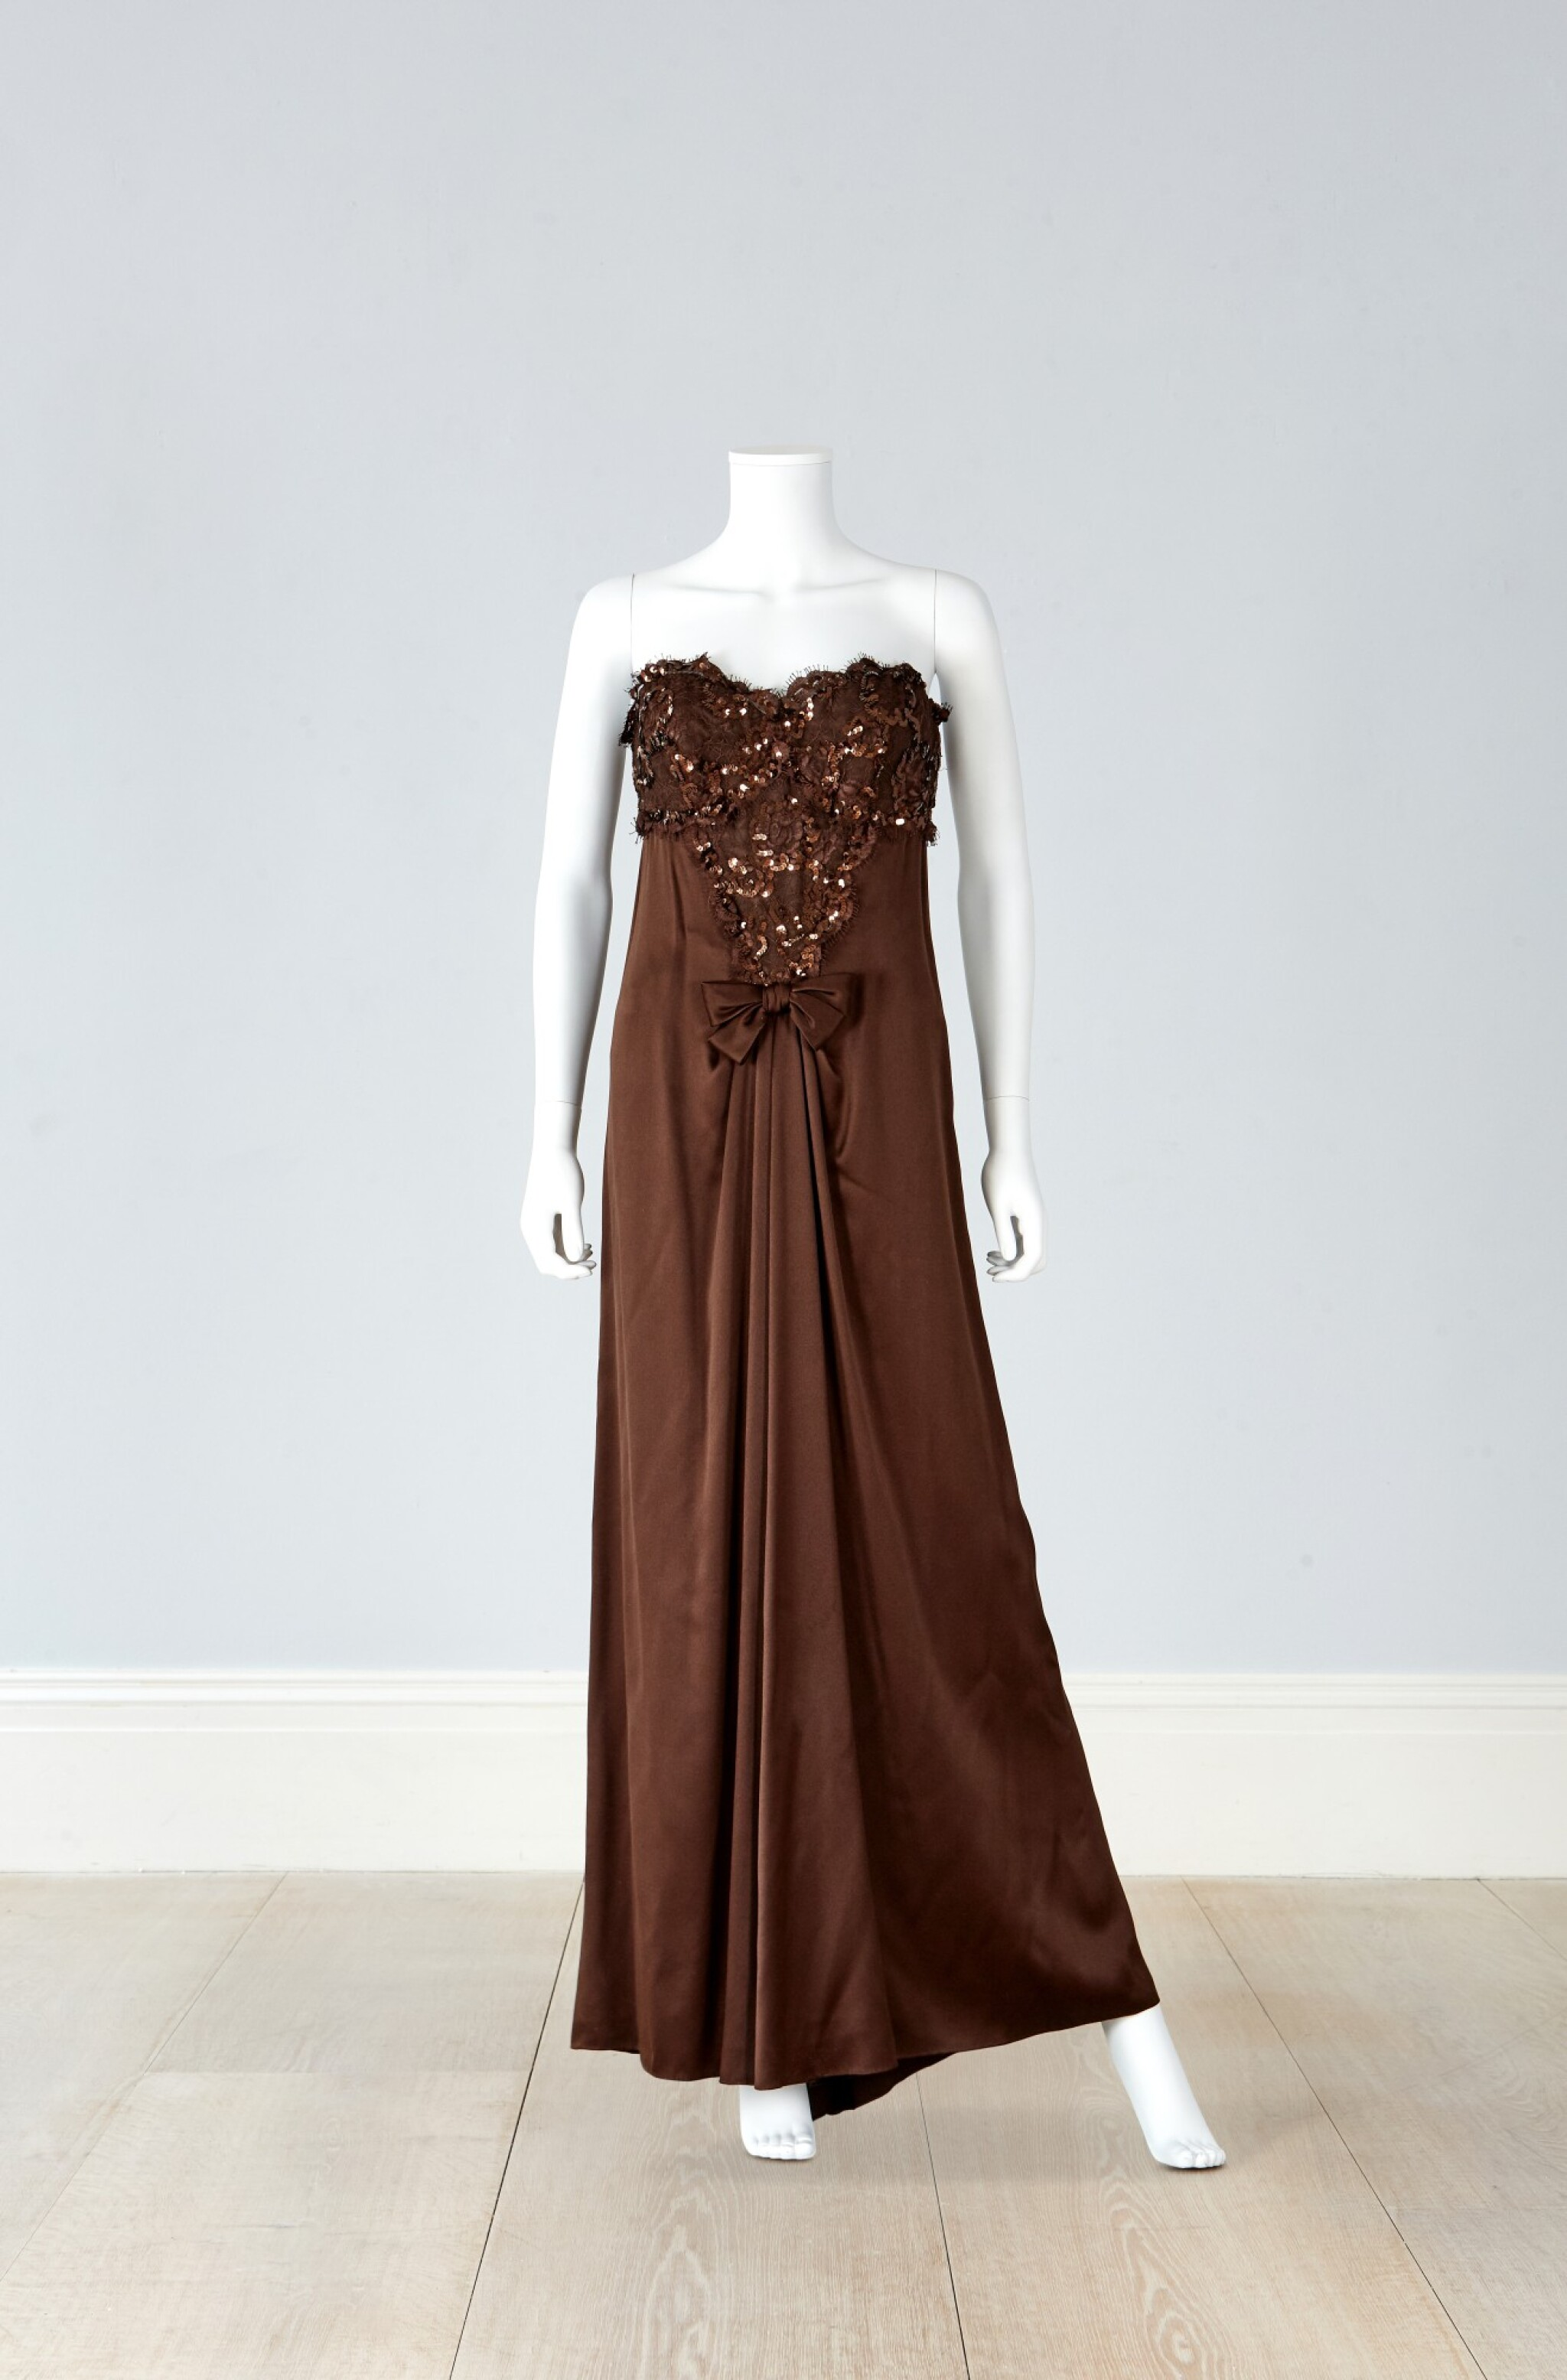 View 1 of Lot 38. Haute Couture Fourreau Evening Dress, Autumn/Winter Collection, 1991.